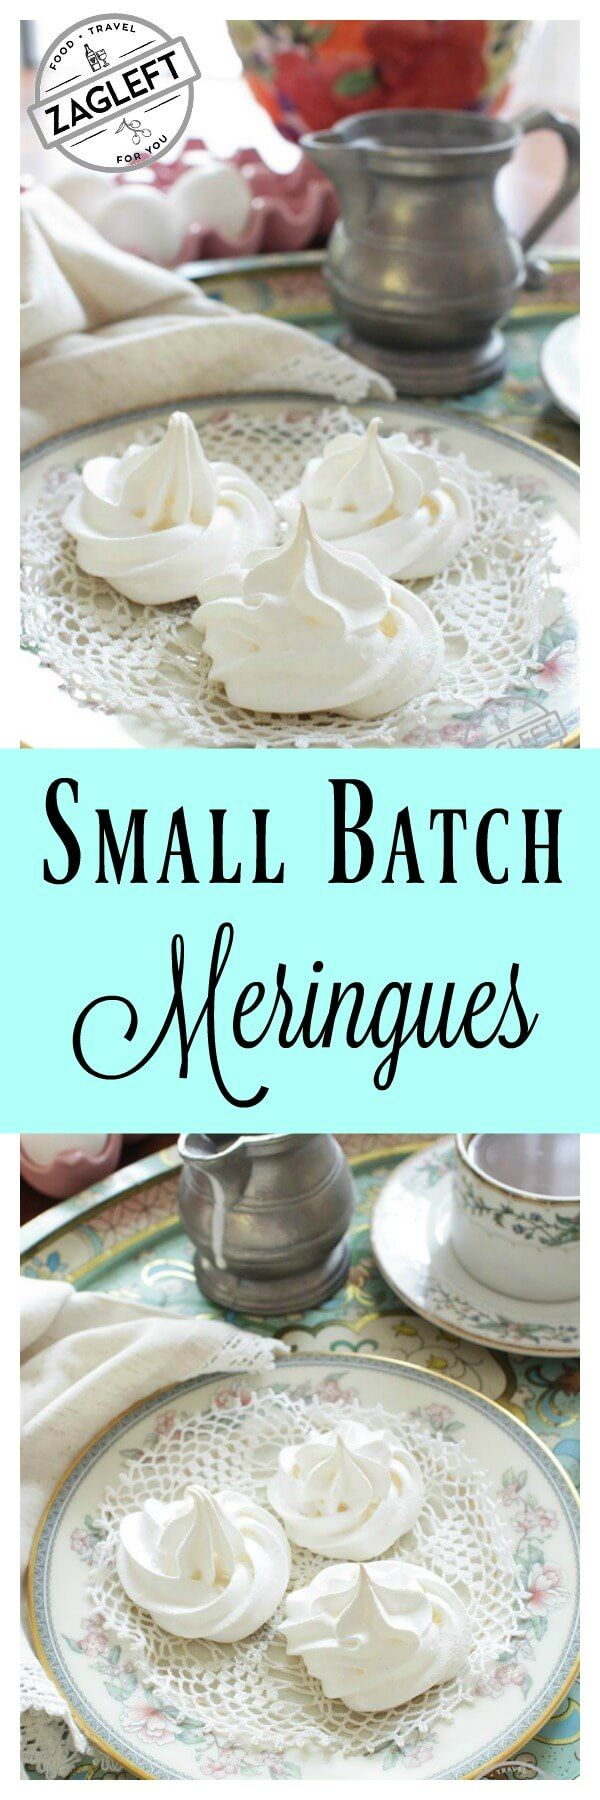 One egg white is all that's needed for these lovely and delicate meringues. This small batch recipe makes five or six melt-in-your mouth meringue cookies. So easy to make too!